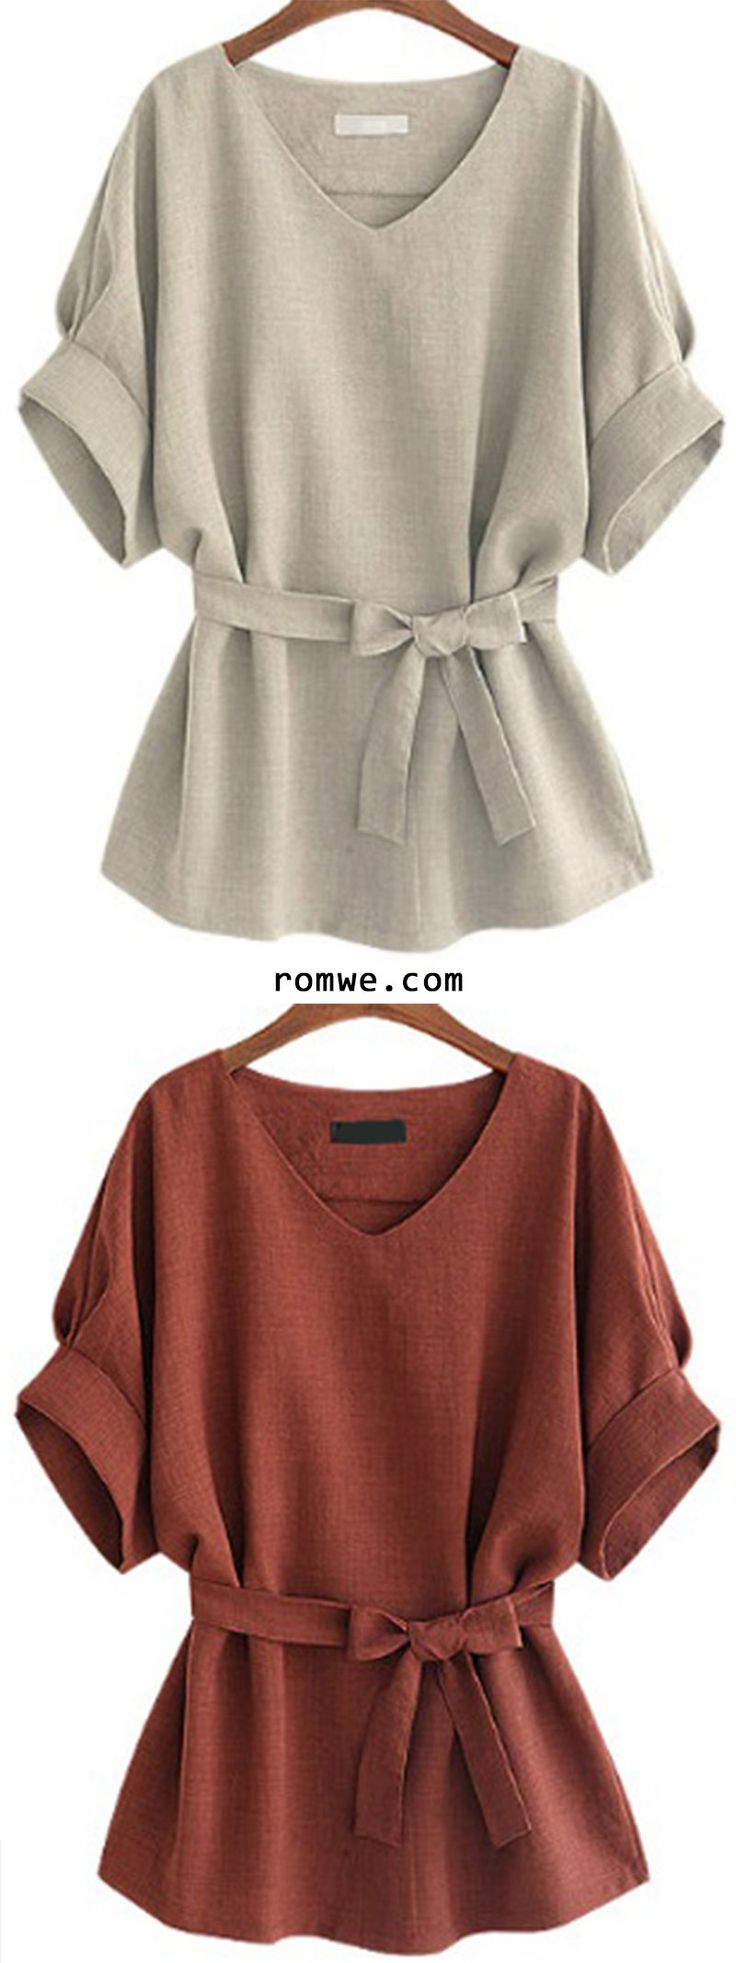 V Neck Self Tie Blouse - Best 25+ Blouses Ideas On Pinterest Work Blouse, Long Sleeve